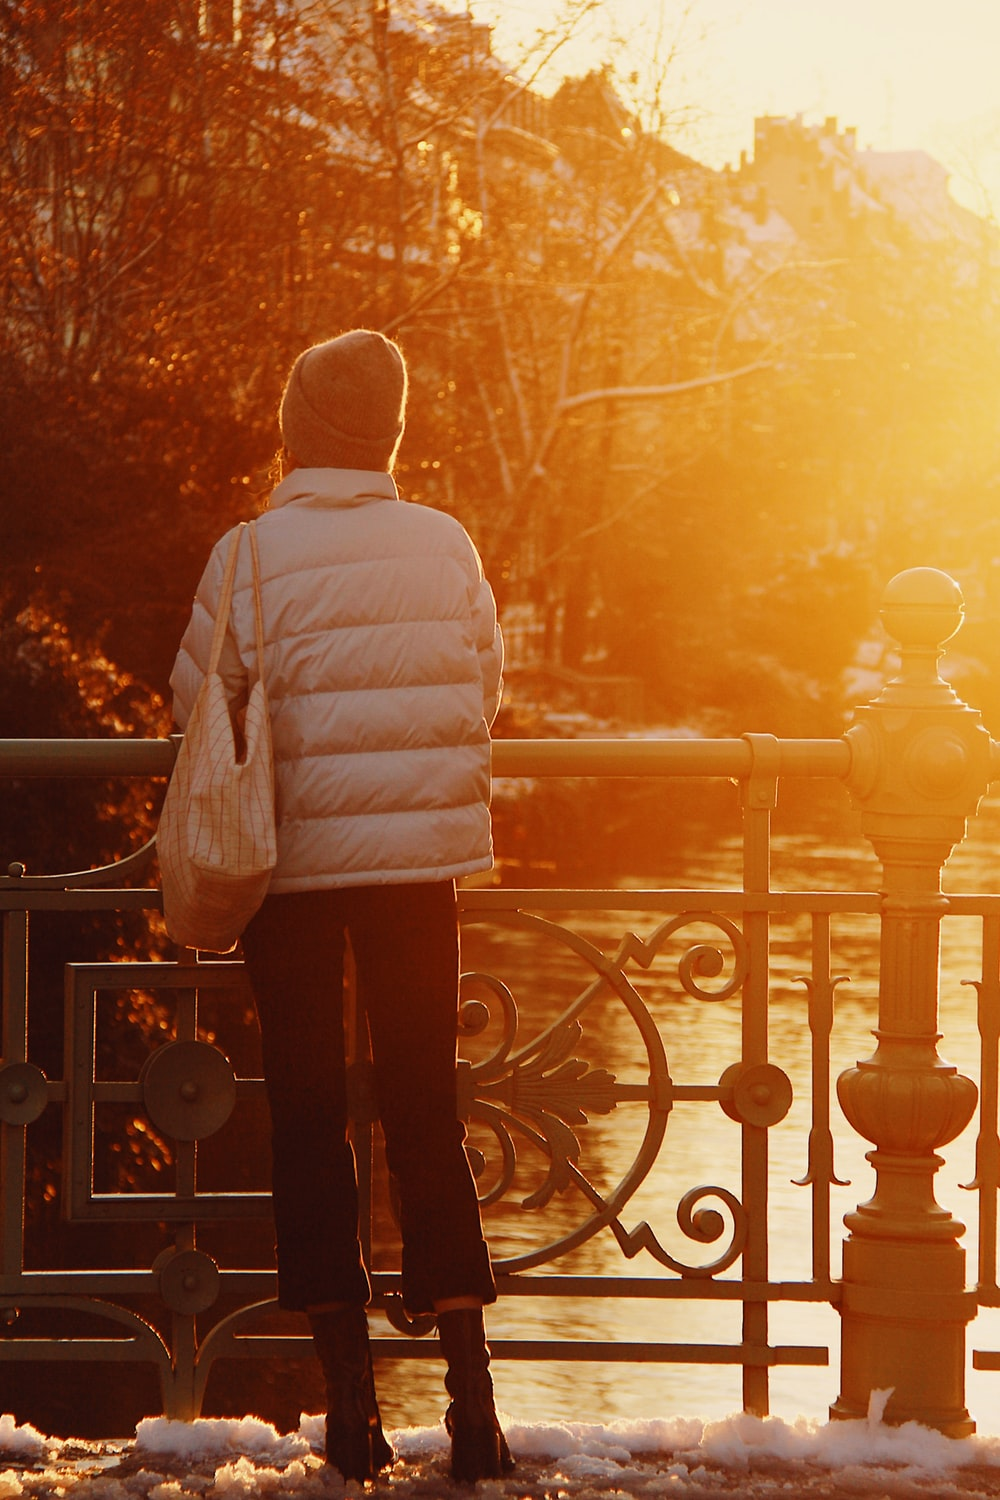 woman in white sweater standing near railings during daytime